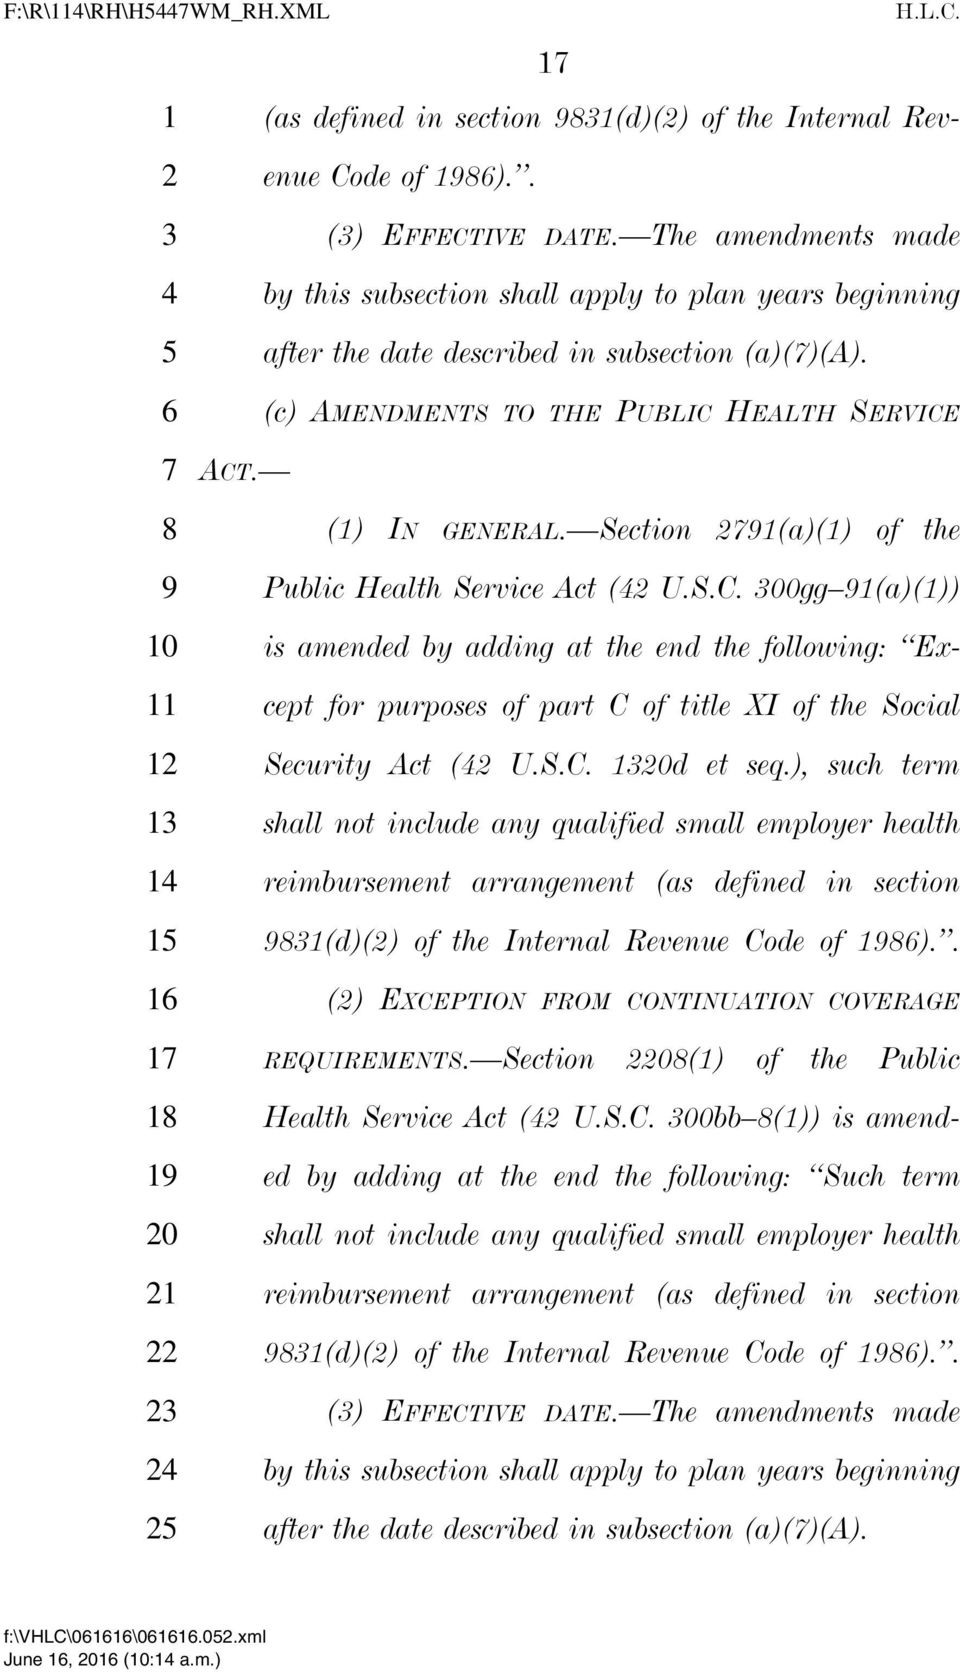 Section 21(a)(1) of the Public Health Service Act (2 U.S.C. 00gg 1(a)(1)) is amended by adding at the end the following: Except for purposes of part C of title XI of the Social Security Act (2 U.S.C. d et seq.